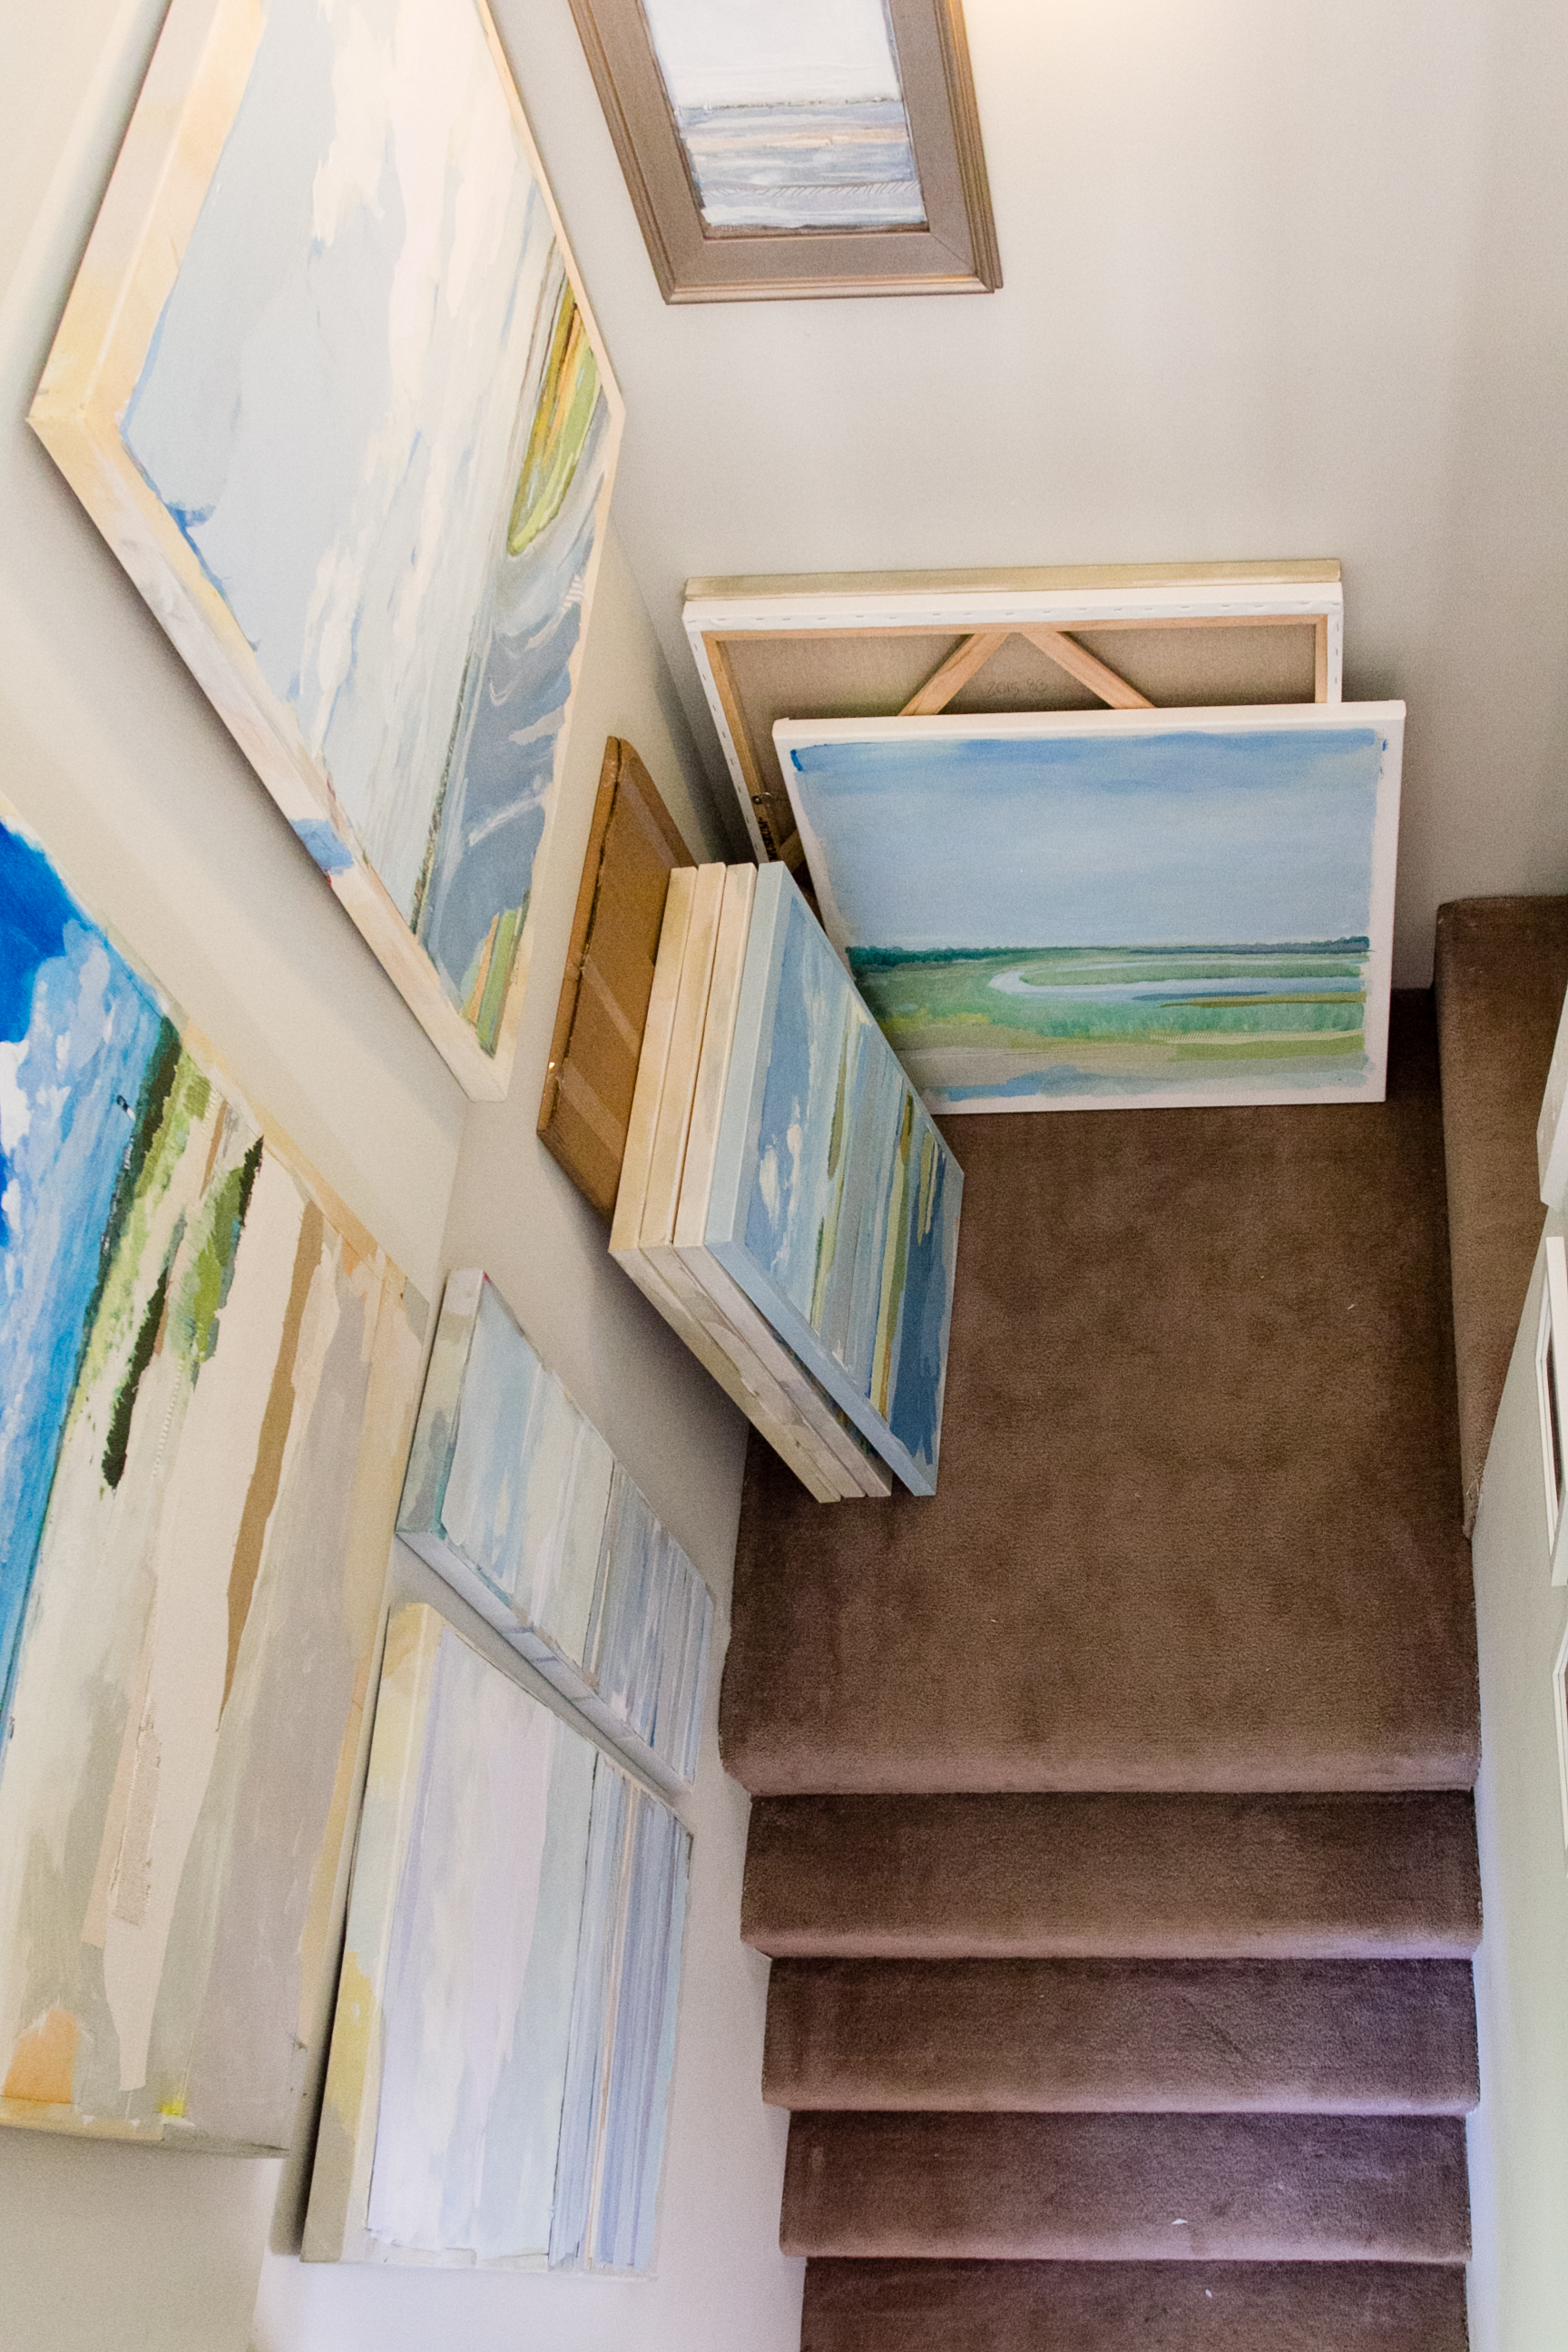 Art storage on the stairs